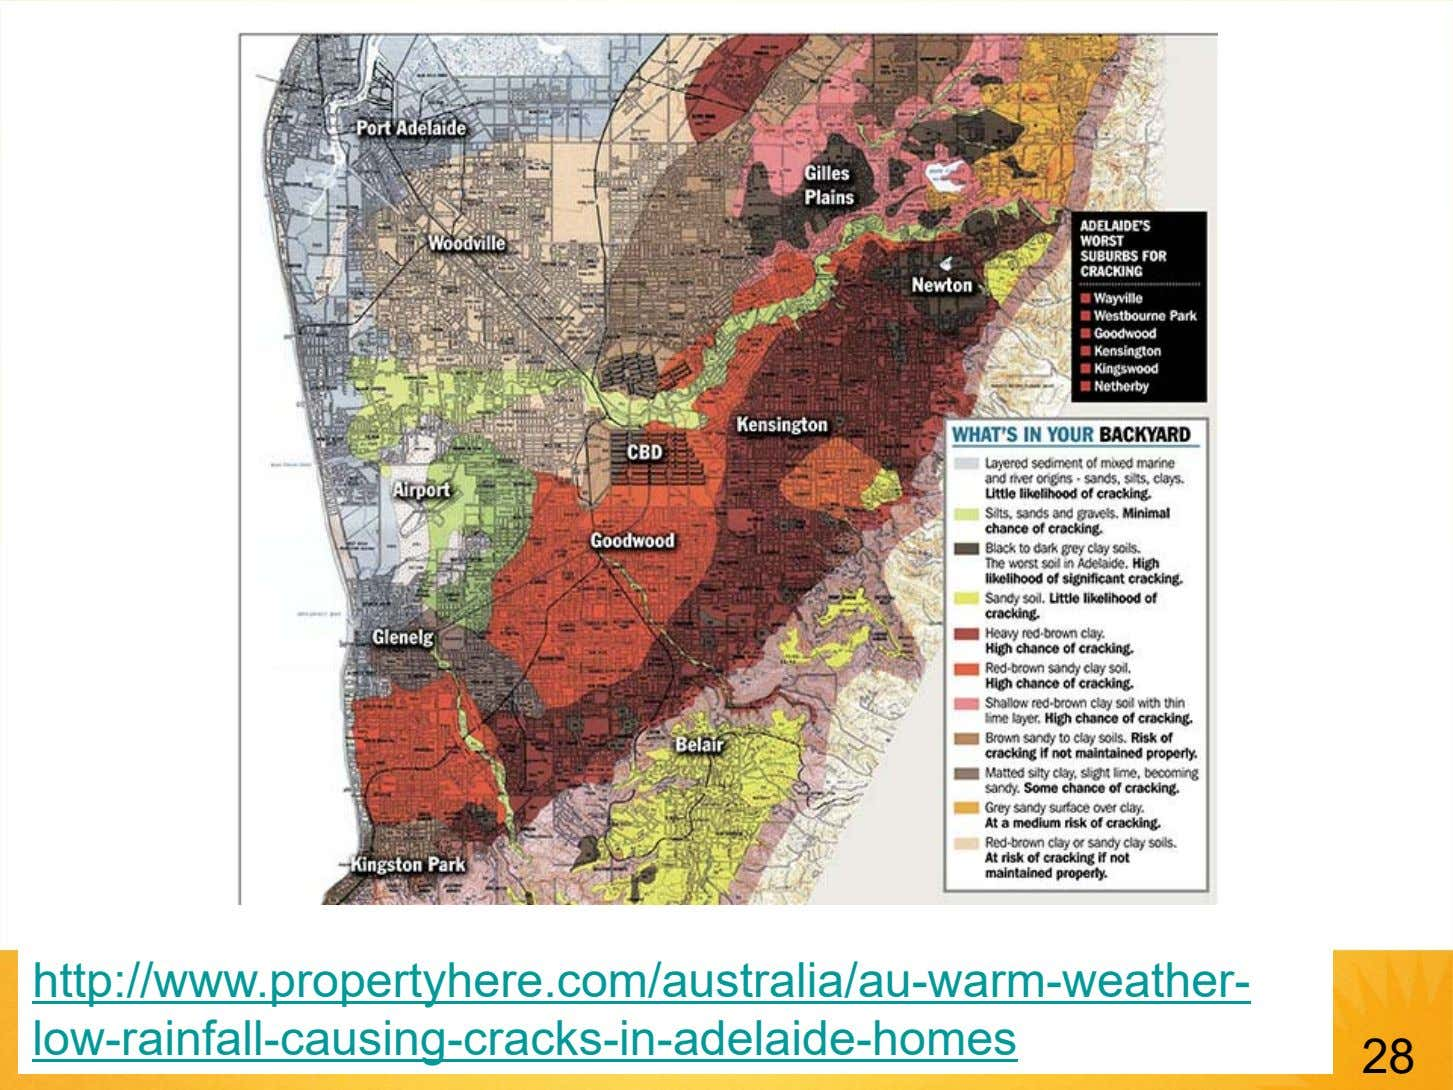 http://www.propertyhere.com/australia/au-warm-weather- low-rainfall-causing-cracks-in-adelaide-homes 28